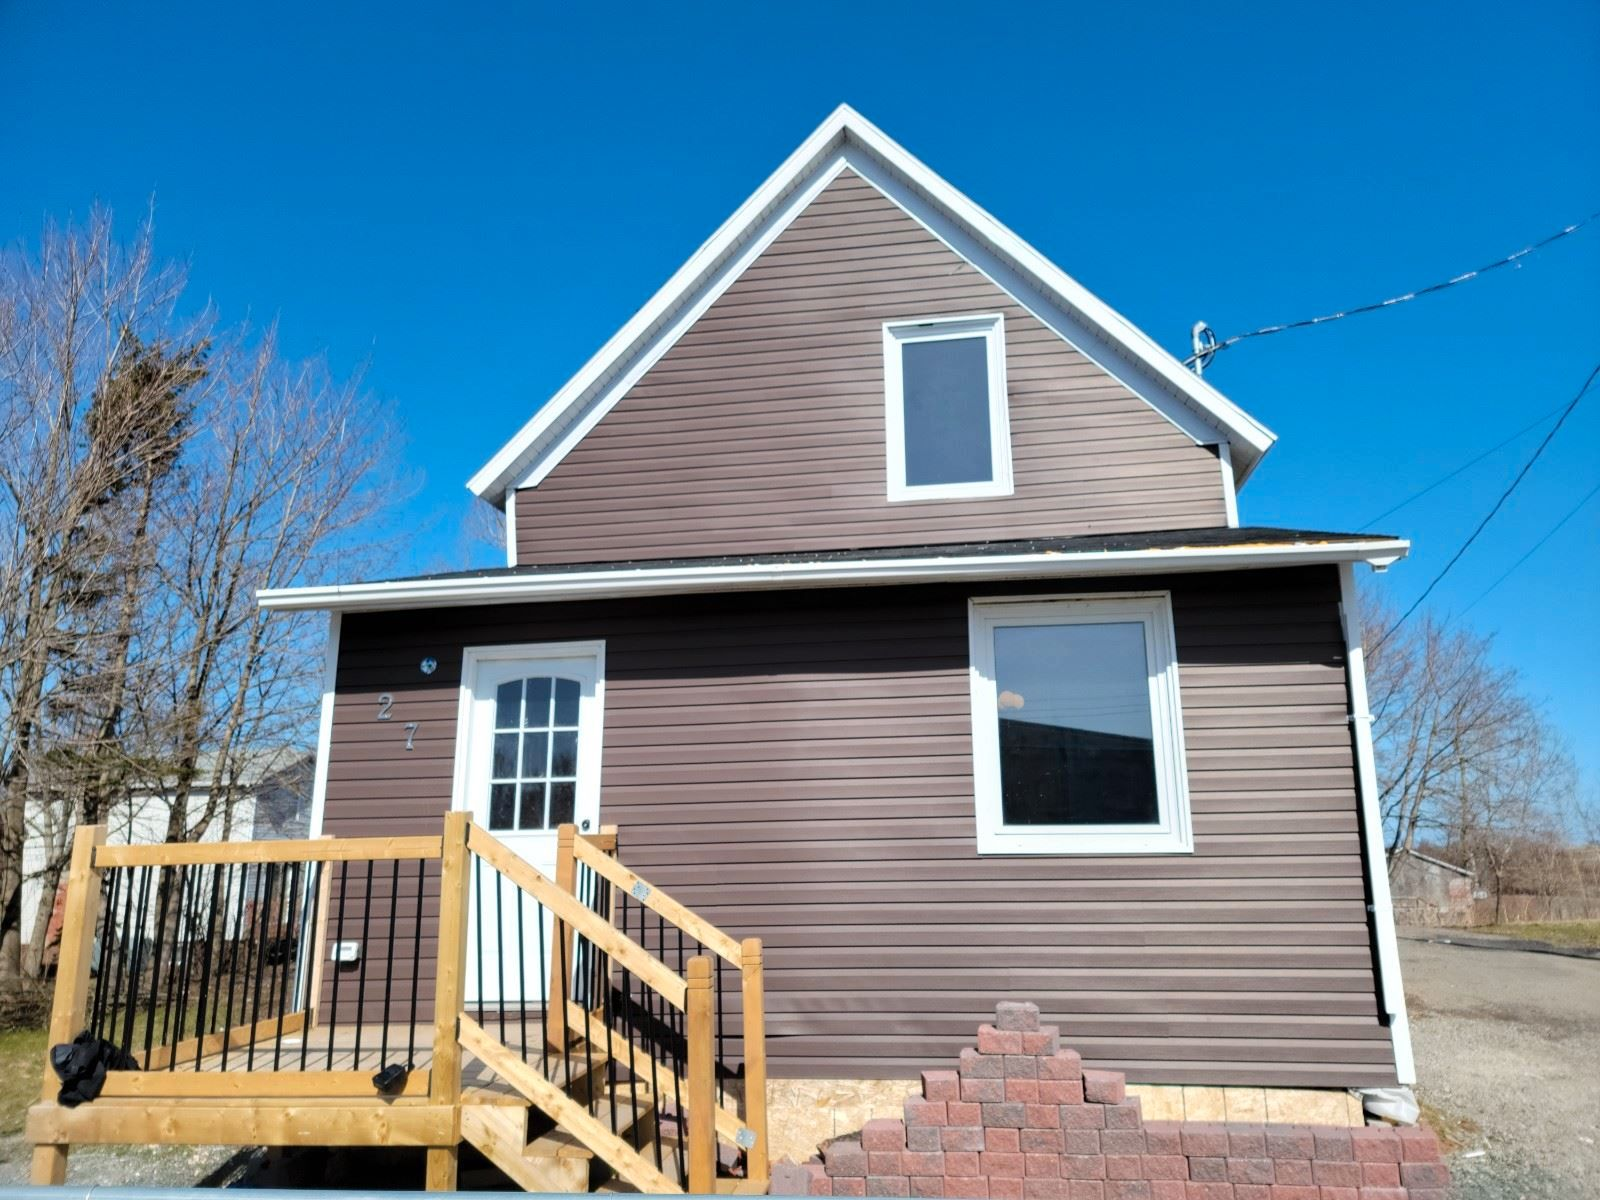 Main Photo: 27 Armstrong Court in Sydney: 201-Sydney Residential for sale (Cape Breton)  : MLS®# 202119508